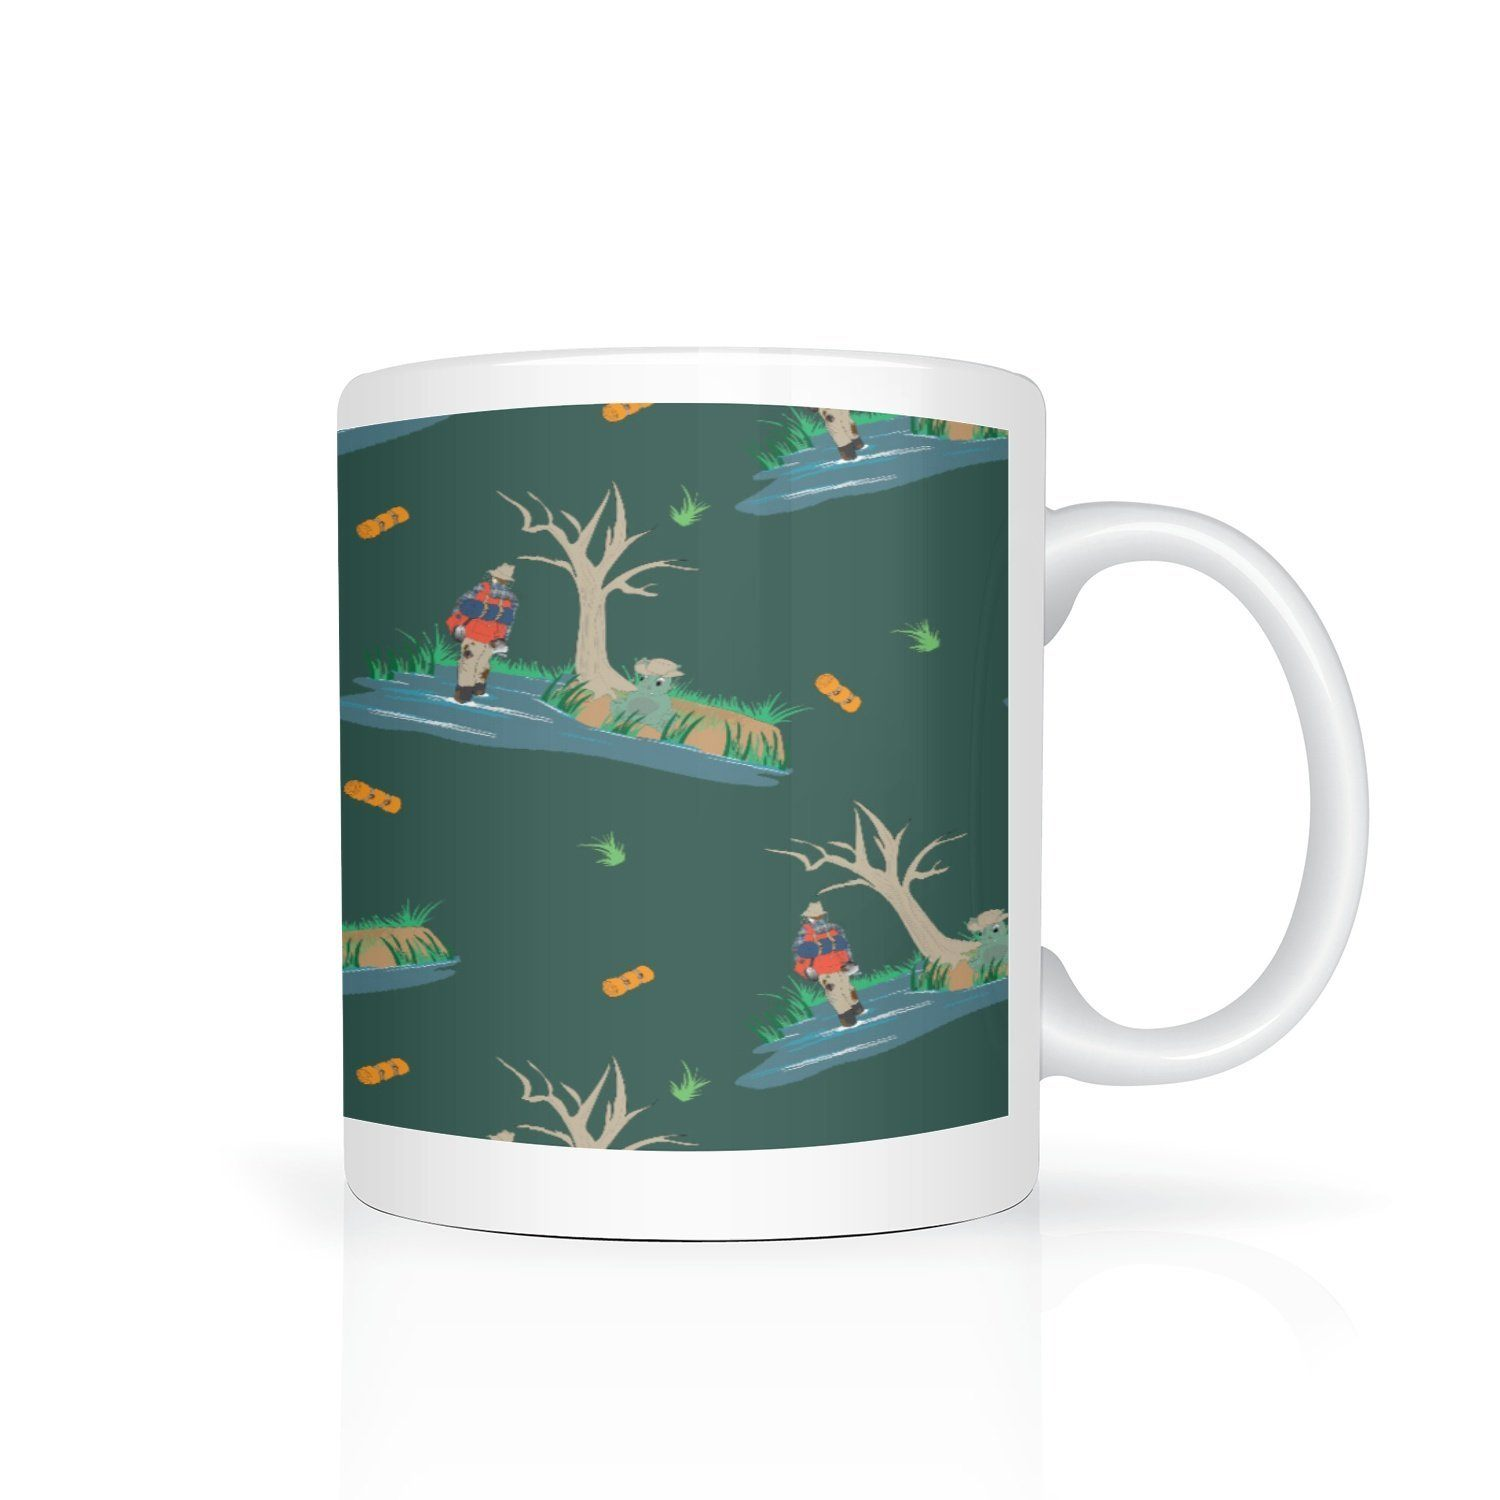 Green Billabong Mug - Fair Dinkum Fashion